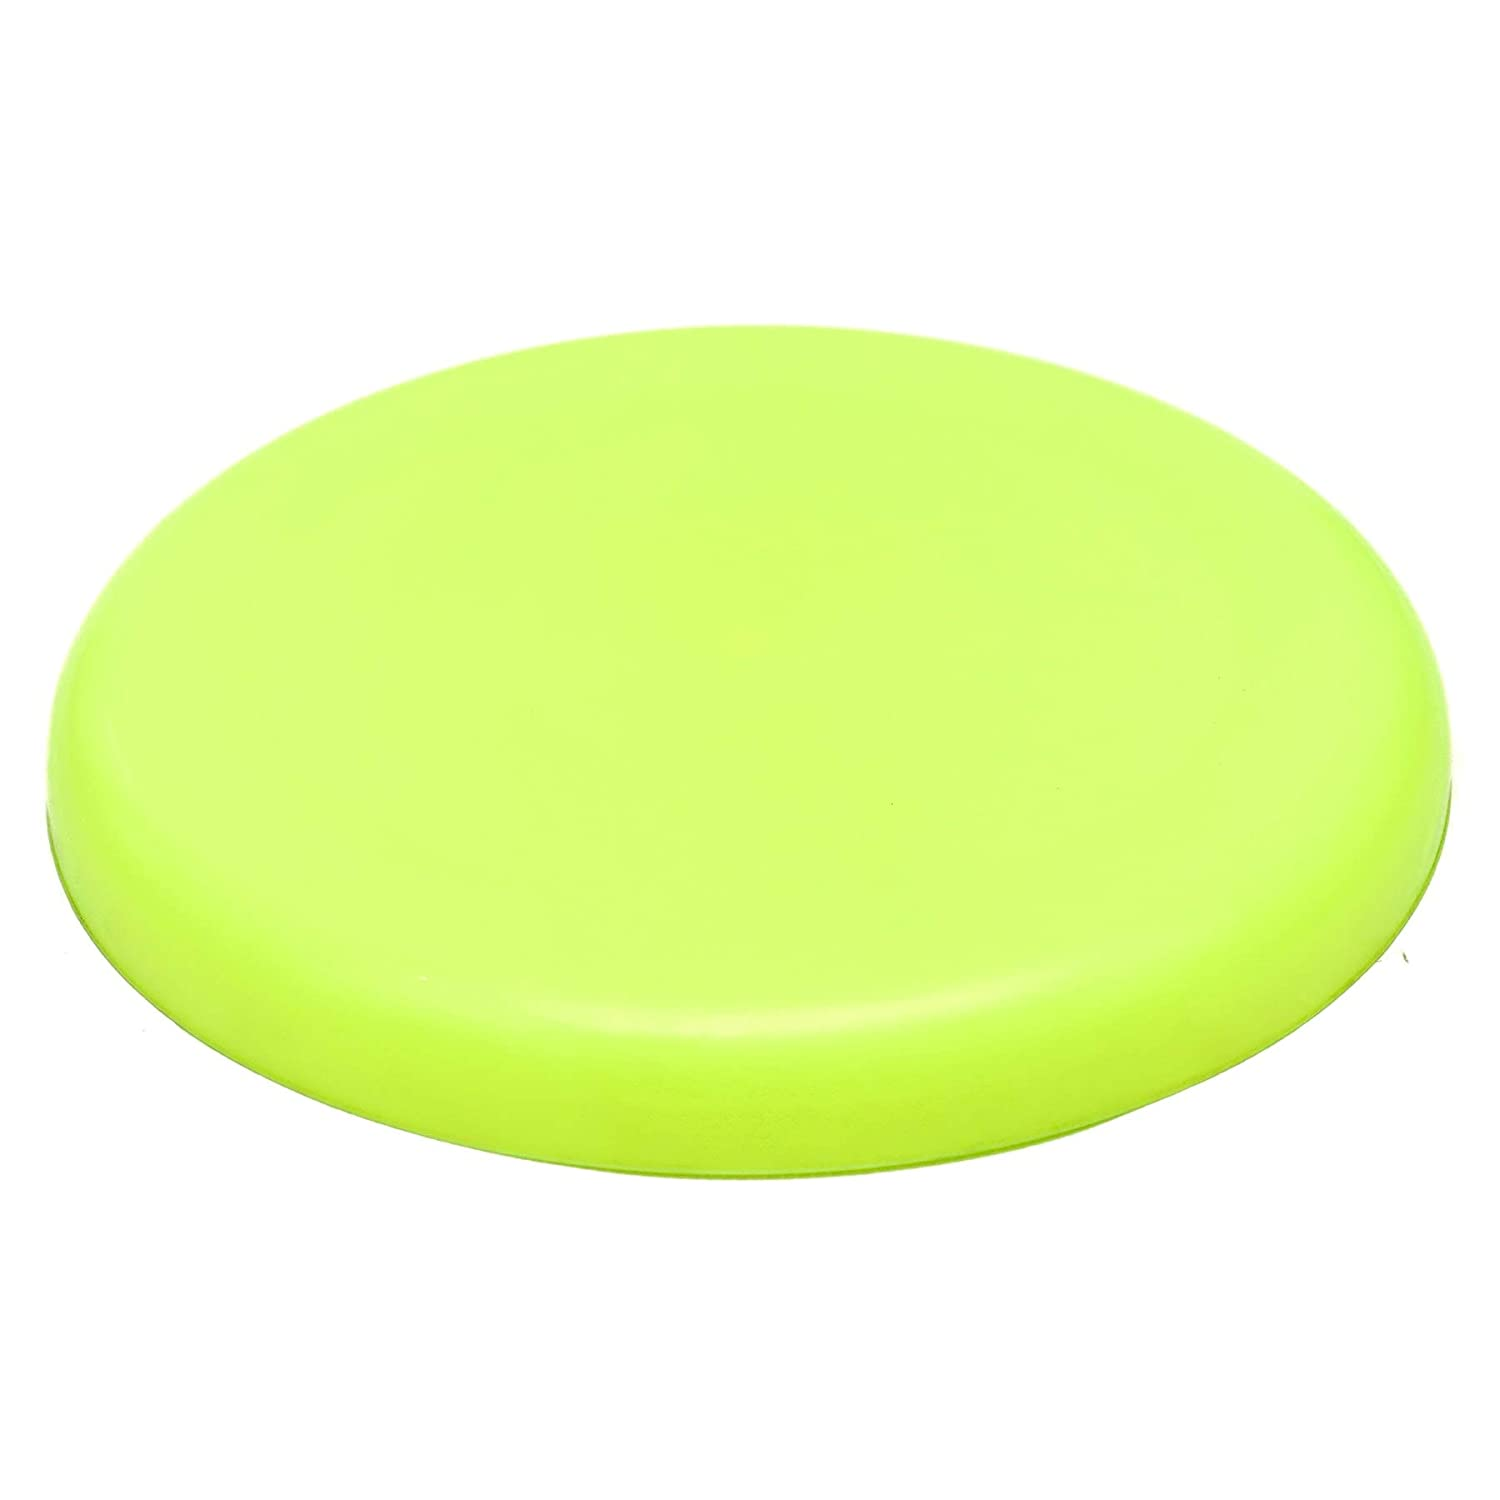 Frisbee - 12 Inches (Green)